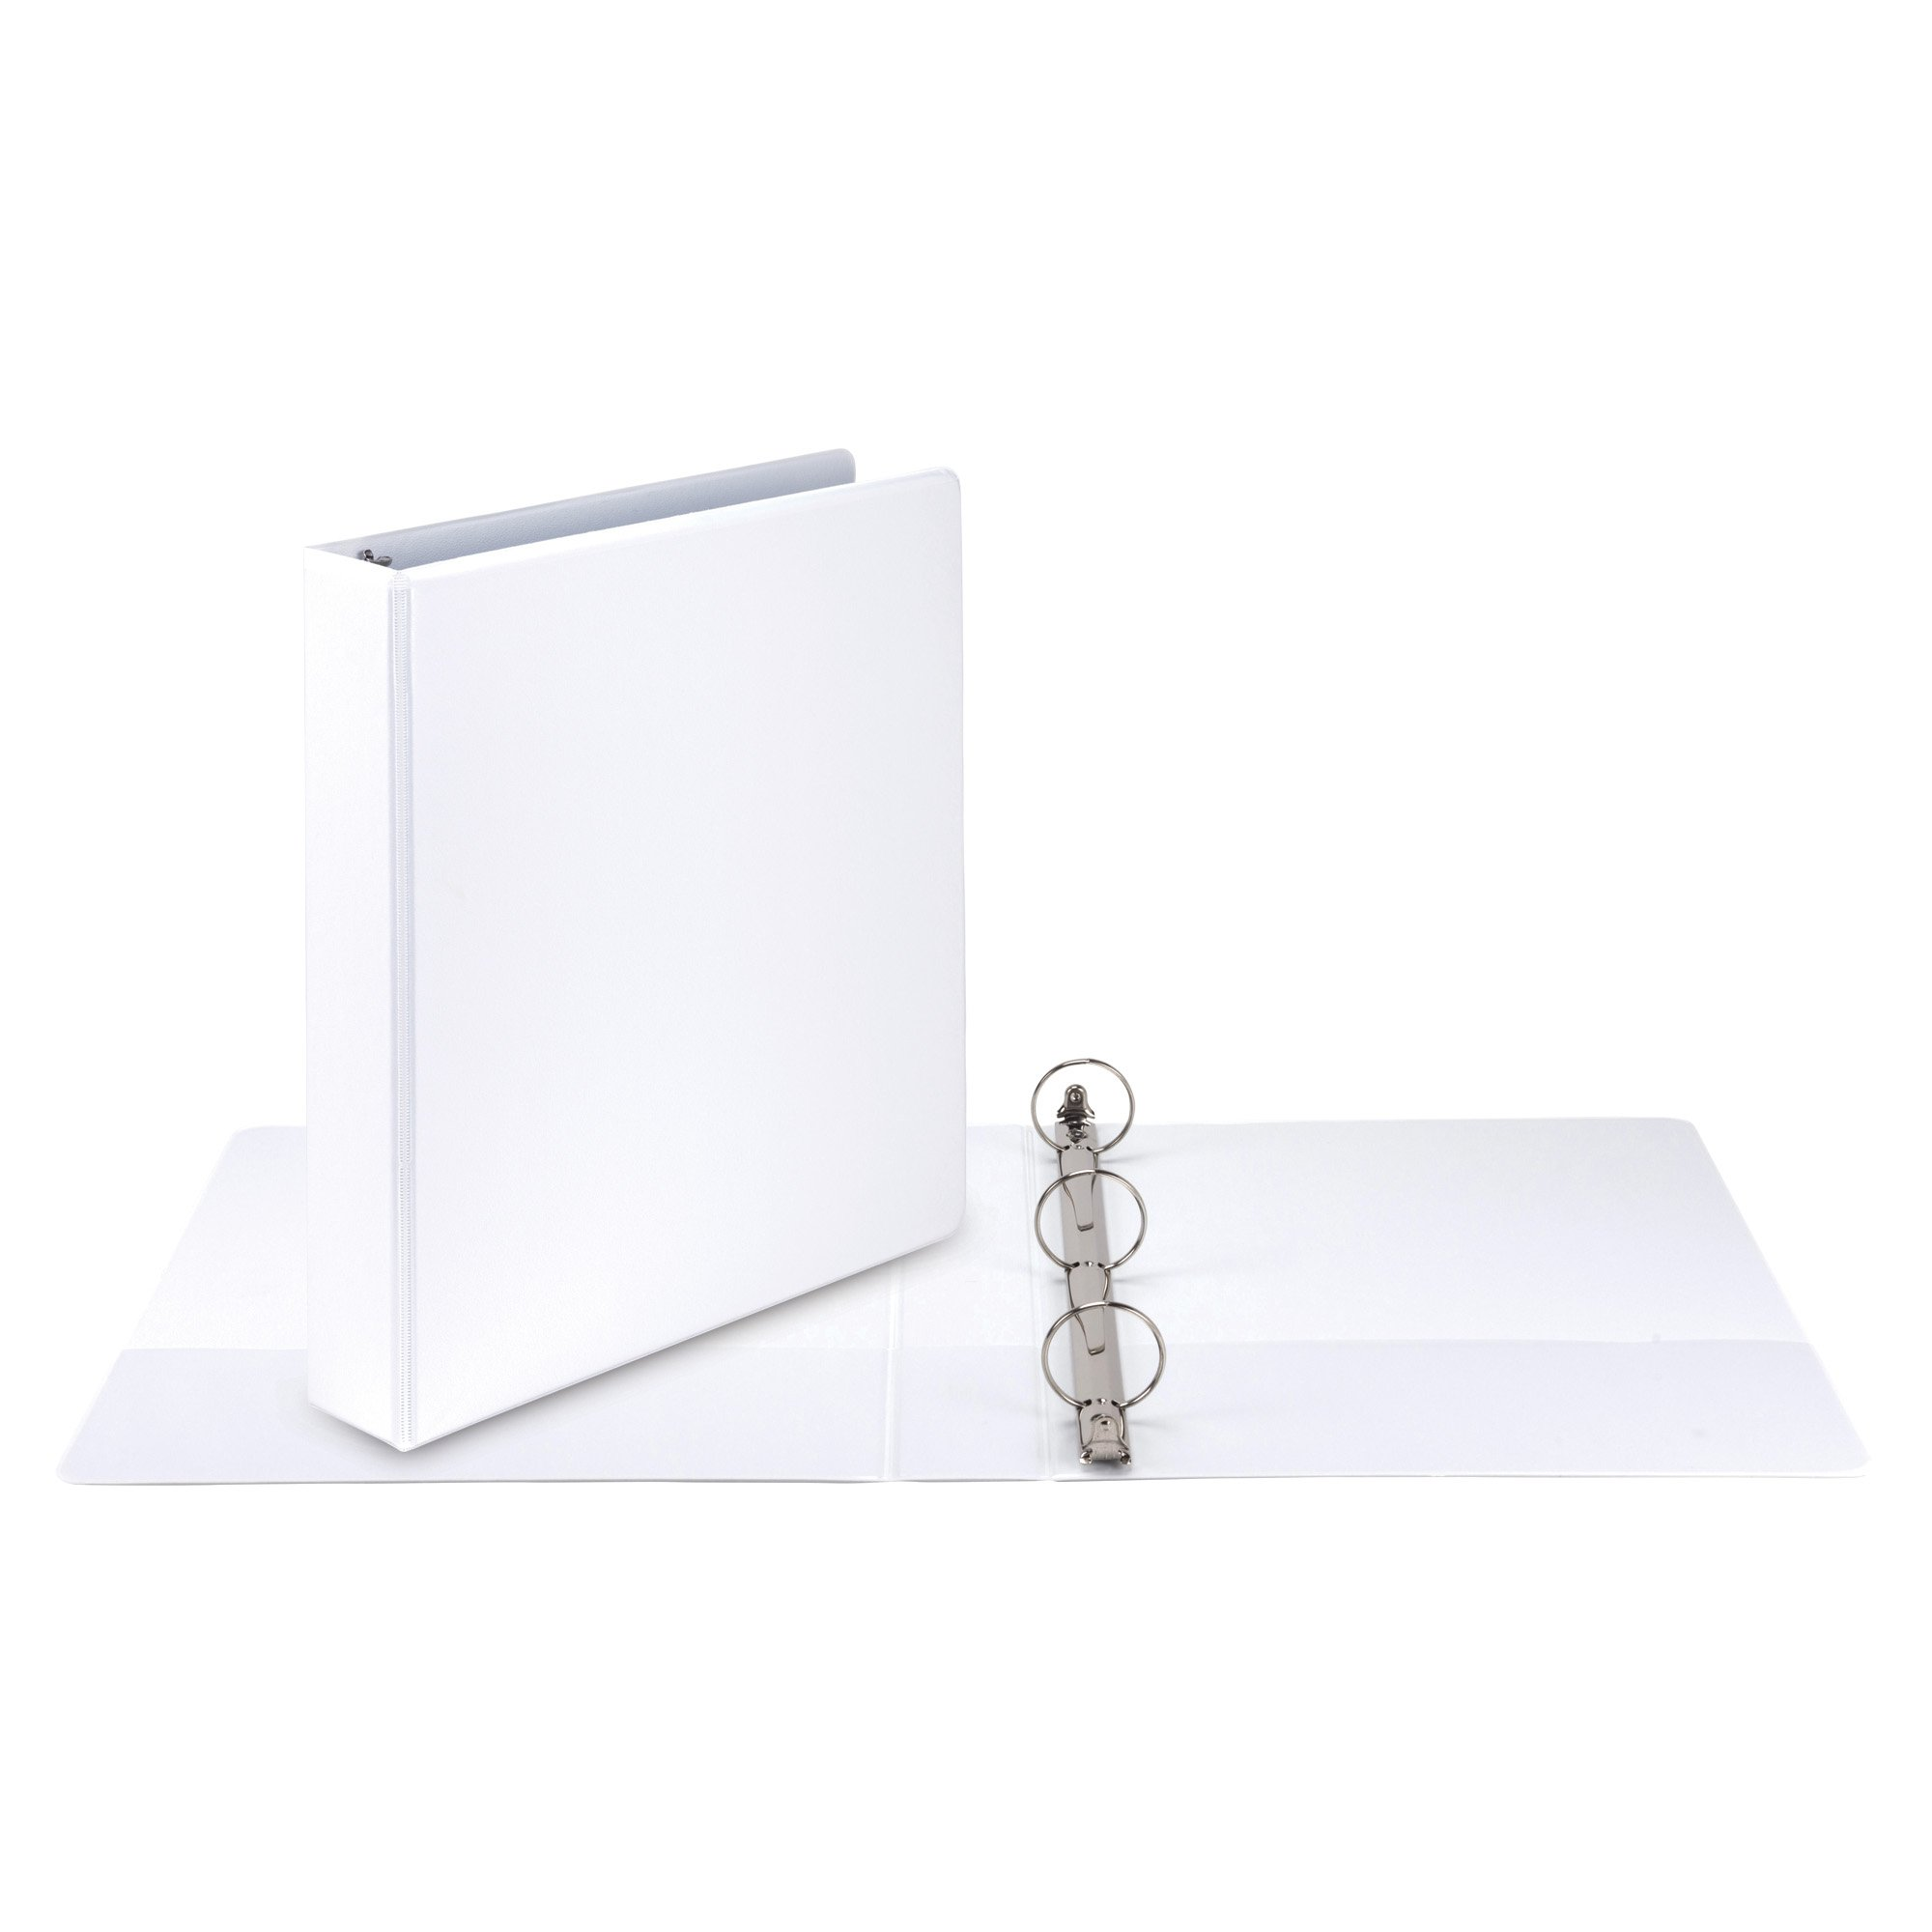 Samsill Economy 3 Ring View Binder, 1.5 Inch Round Ring – Holds 350 Sheets, PVC-Free / Non-Stick Customizable  Cover, White, 12 Pack by Samsill (Image #5)